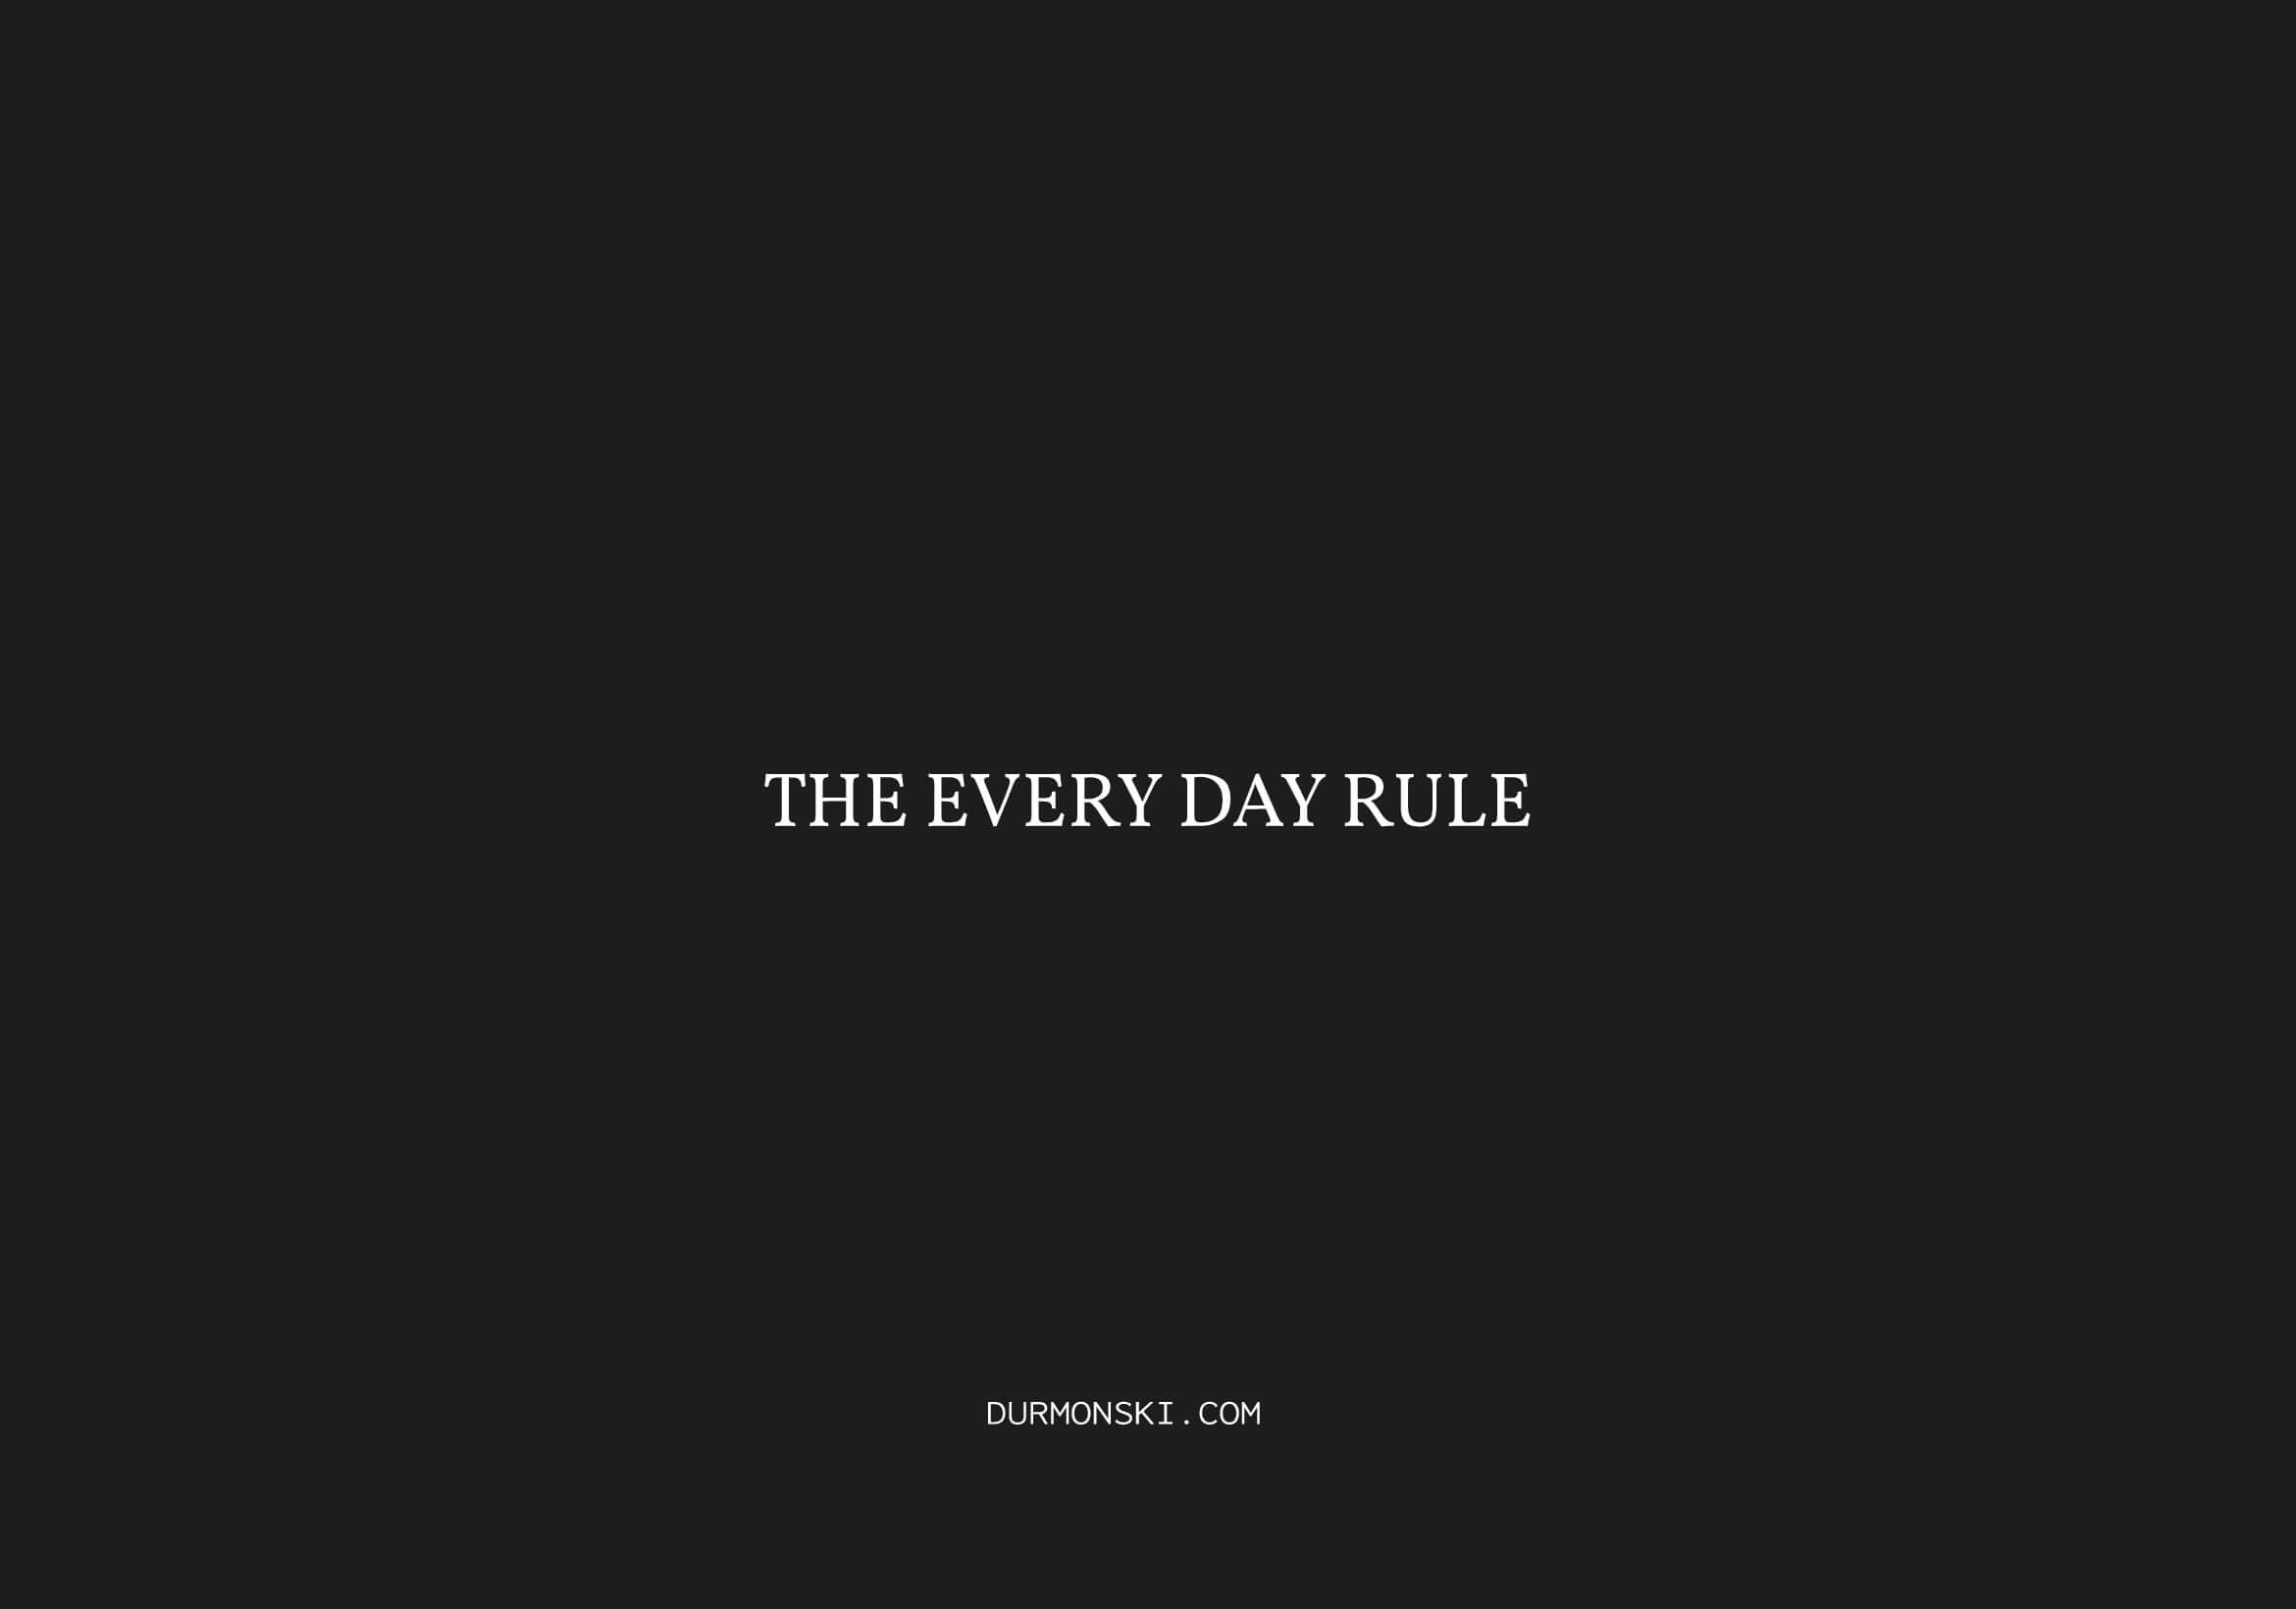 The Every Day Rule